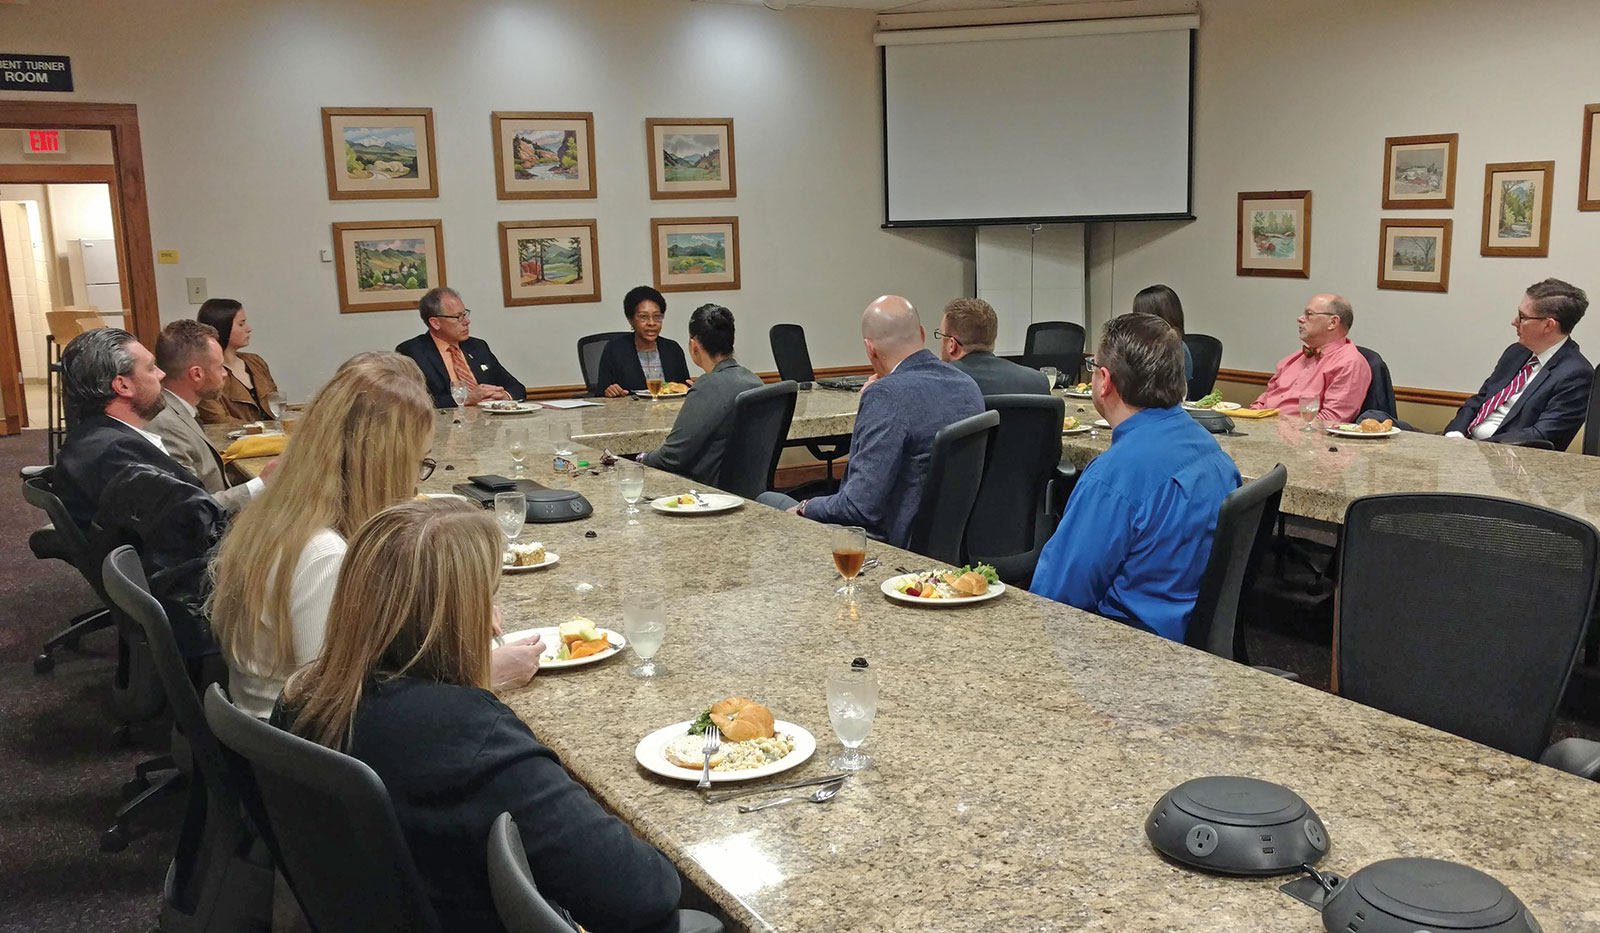 Ambassador (Ret.) Reddick presents during a luncheon roundtable at Park University on April 23.